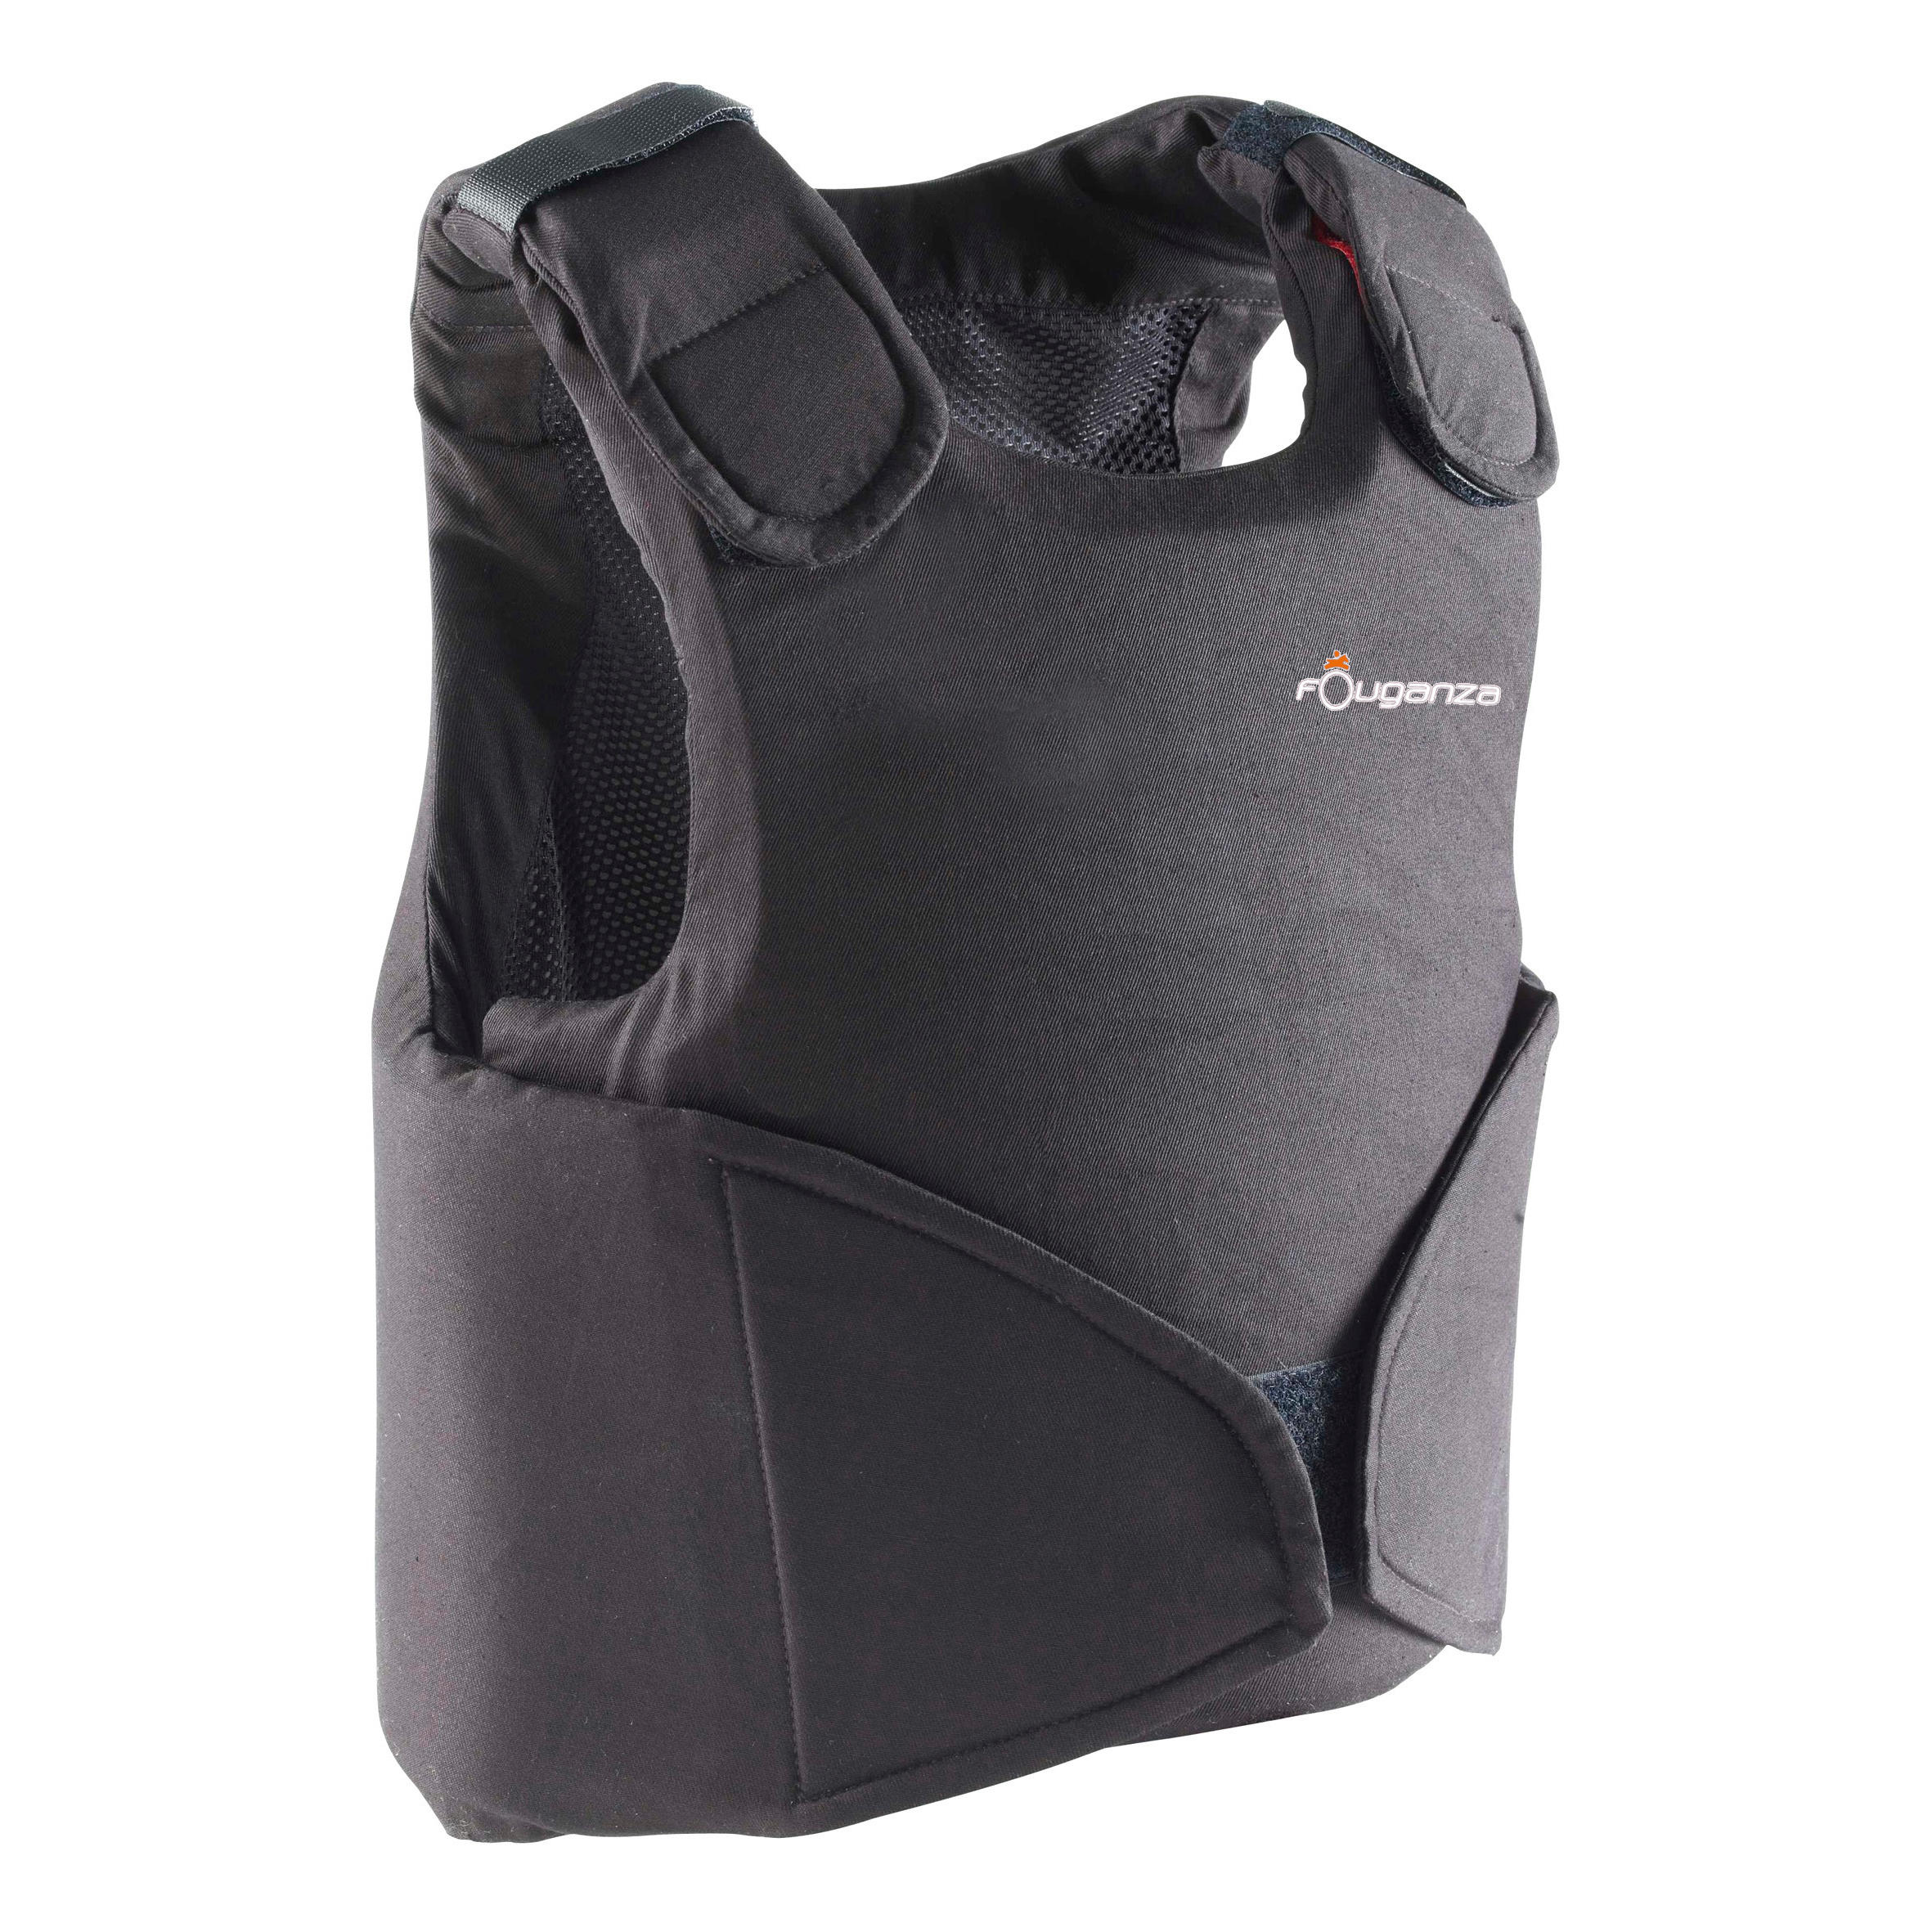 Junior Horse Riding Safety 100 Body Protector - Black